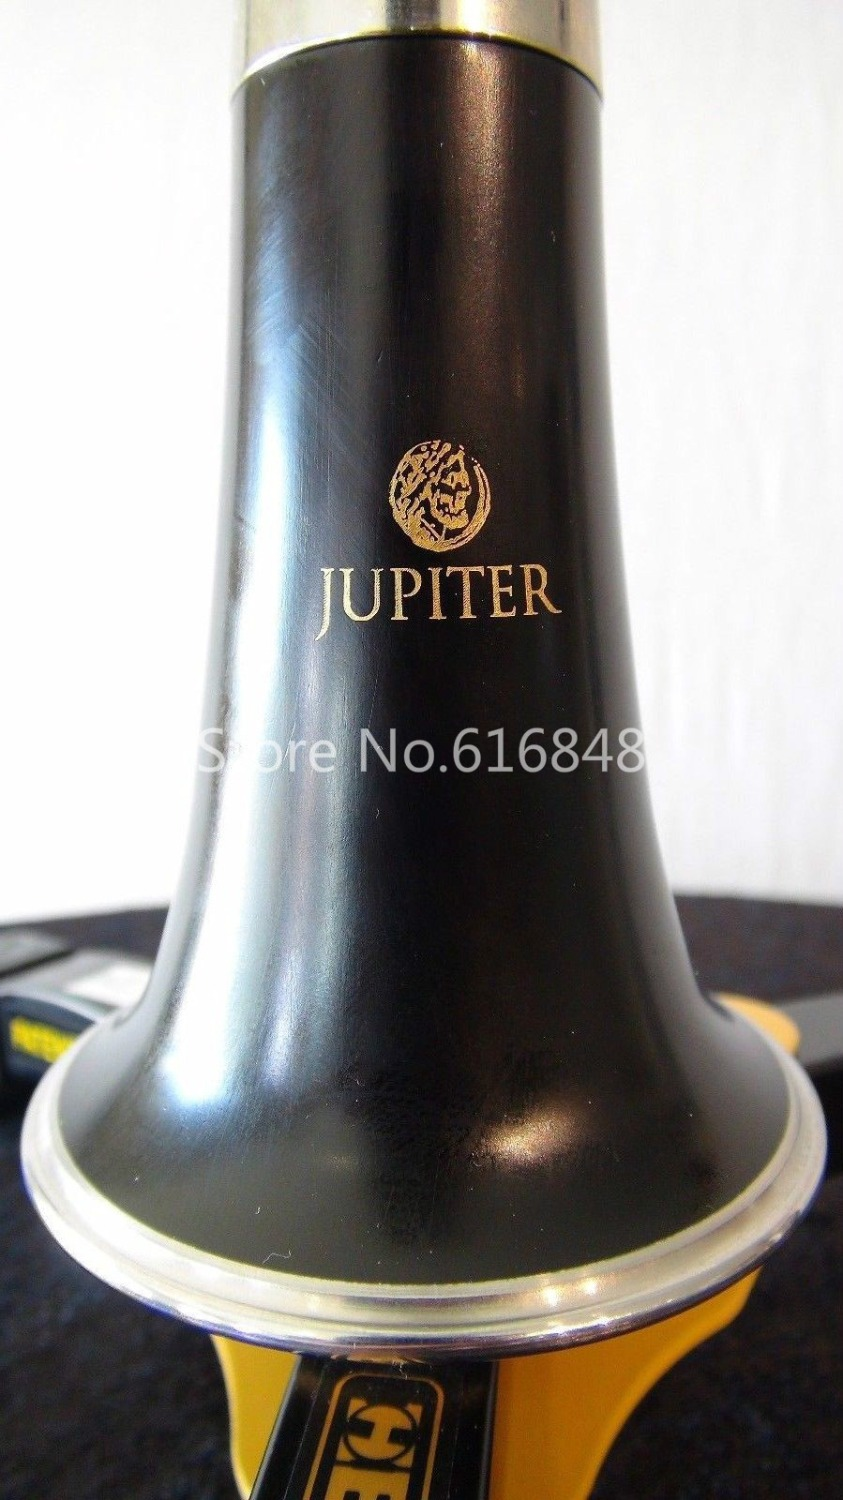 JUPITER JCL-737 Professional B-flat Tune High Quality Instruments Bb Clarinet Black Tube With Mouthpiece Case Accessories цена